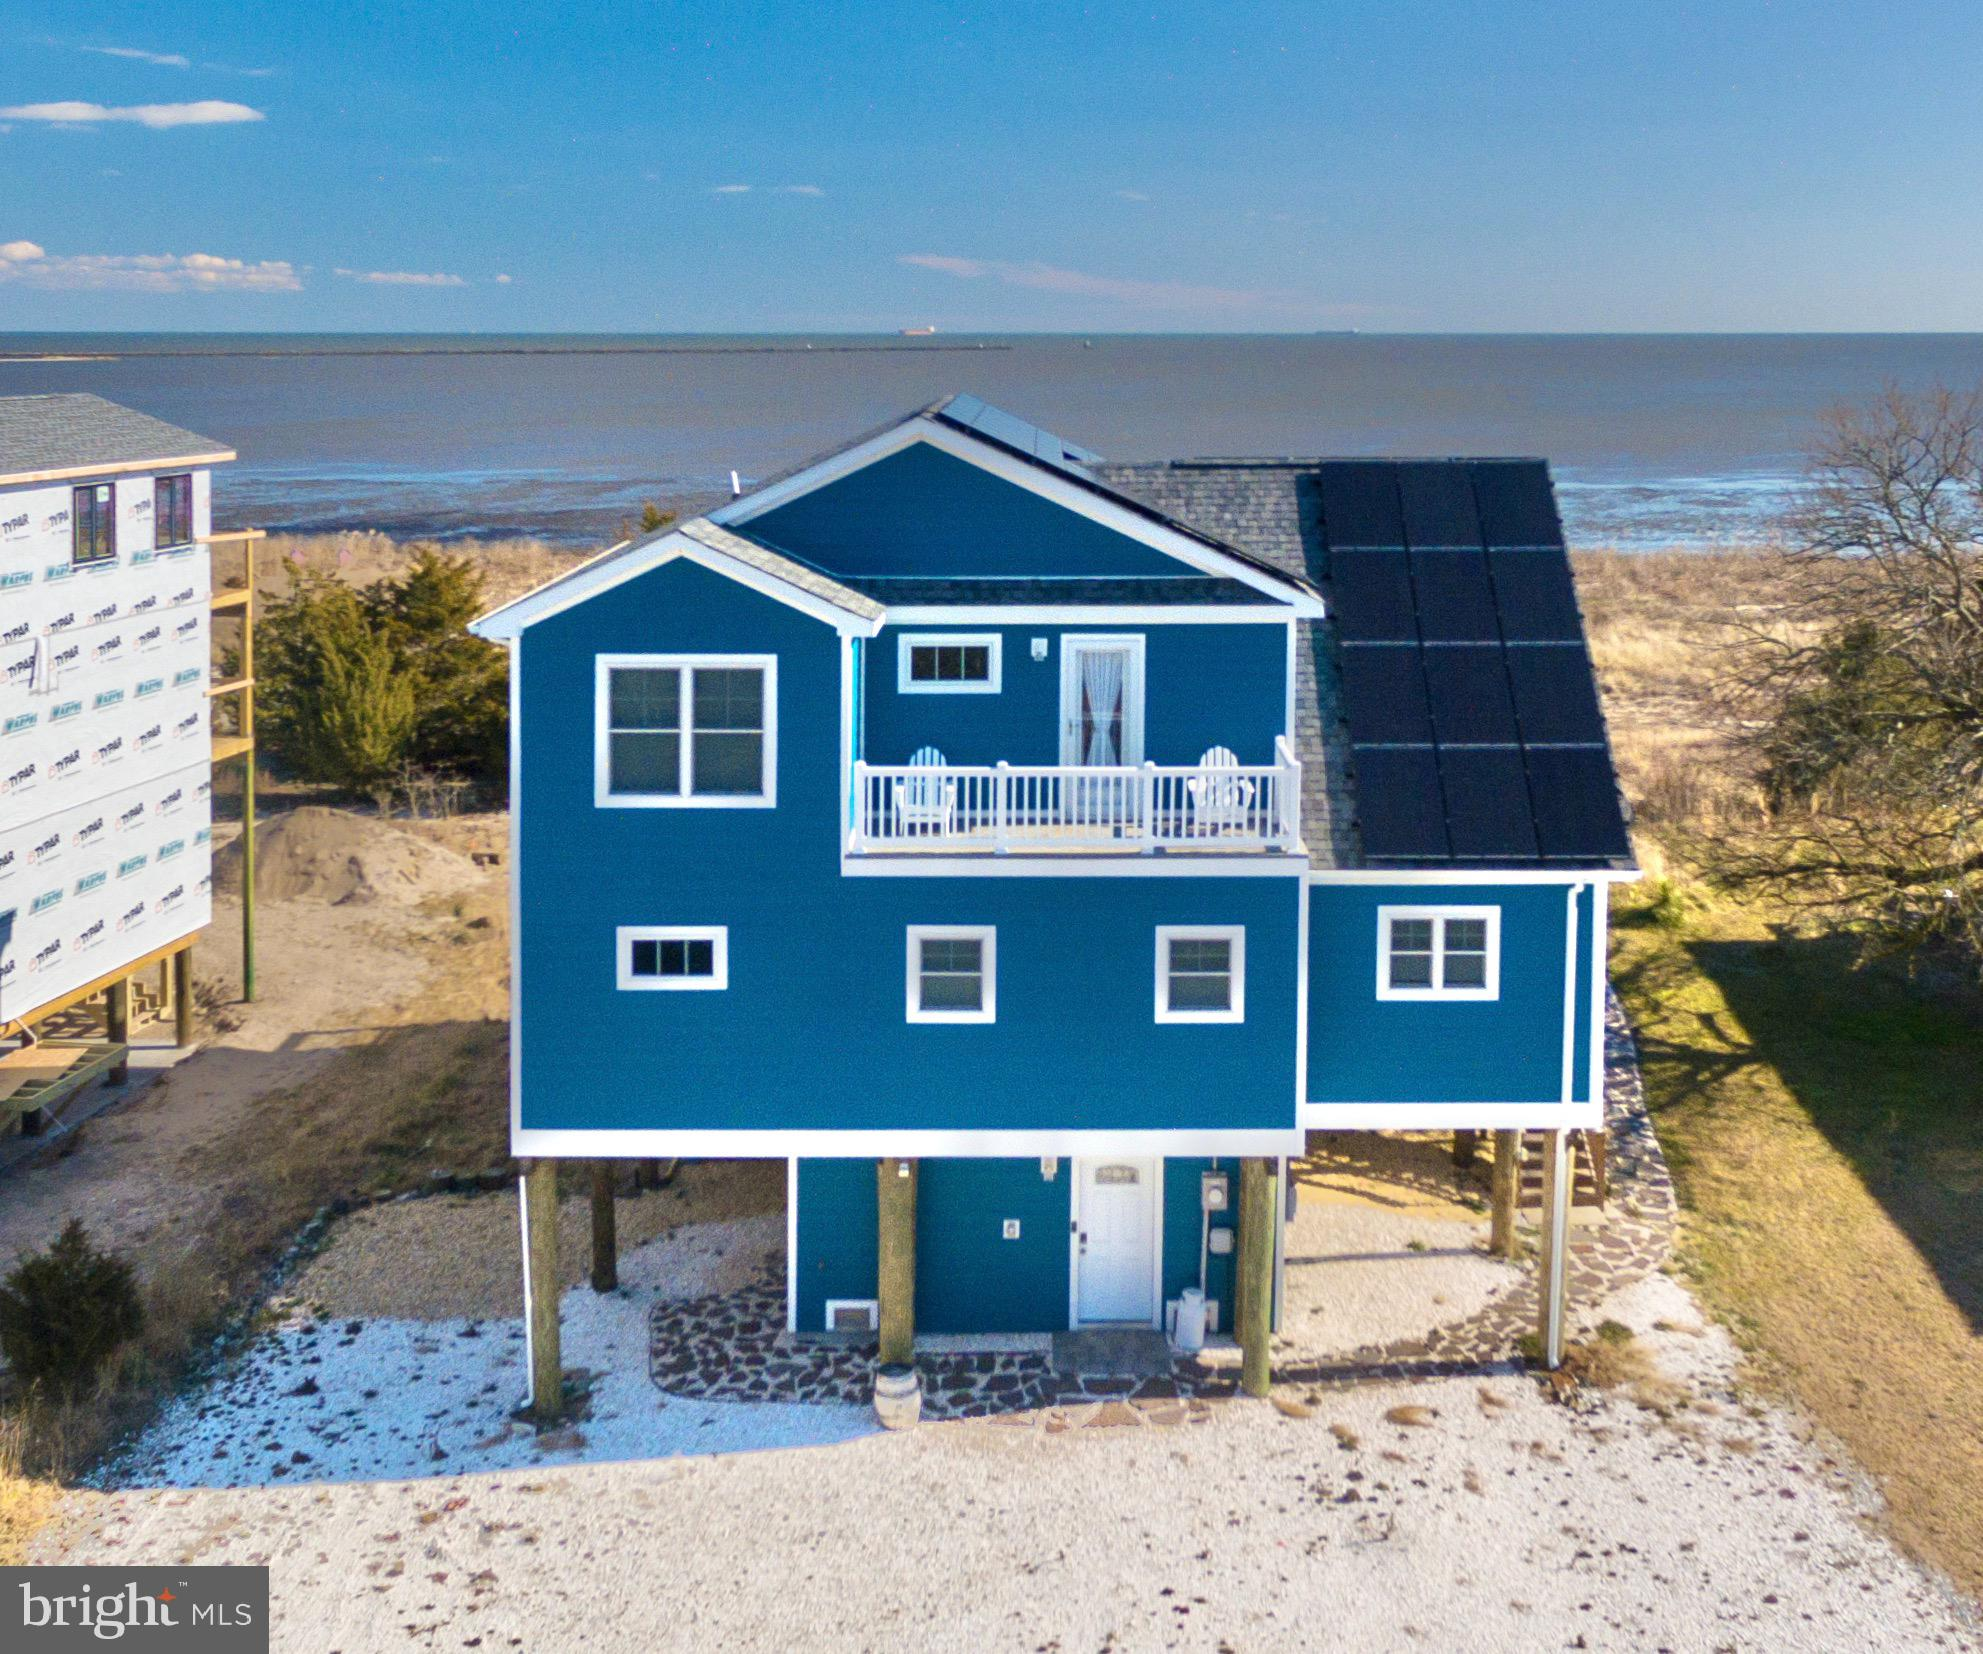 Waterfront on Slaughter Beach -- virtually new - just 2 year young custom home located on a cul-de-sac at the end of Beach Plum Drive.  This custom home delights at every turn -- pull up to beautiful Ocean Blue Hardie-Plank siding and with solar panels to keep those energy bills low.  2700 sq ft home with 4 bedrooms, 2.5 baths.  Beautiful open floorplan -- living area opens to dining and kitchen as well as tiled 4 season room and decks with stunning views of the Delaware Bay and its amazing sunrises.  Kitchen features granite countertops, stainless steel farm sink, Wolf cabinetry, GE Black Slate, finger-print resistant kitchen appliances, contemporary subway tile backsplash, convection oven and French door refrigerator.  Main level primary bedroom with bay views with gorgeous bath -- double sink, granite countertop, soaking tub and beautiful tiled shower with corner seat. Multiple Duradek decks for great views and low maintenance. Main level laundry with LG Graphite side by side washer/dryer.   Custom pathway to the bay with shed under home to store those beach toys.